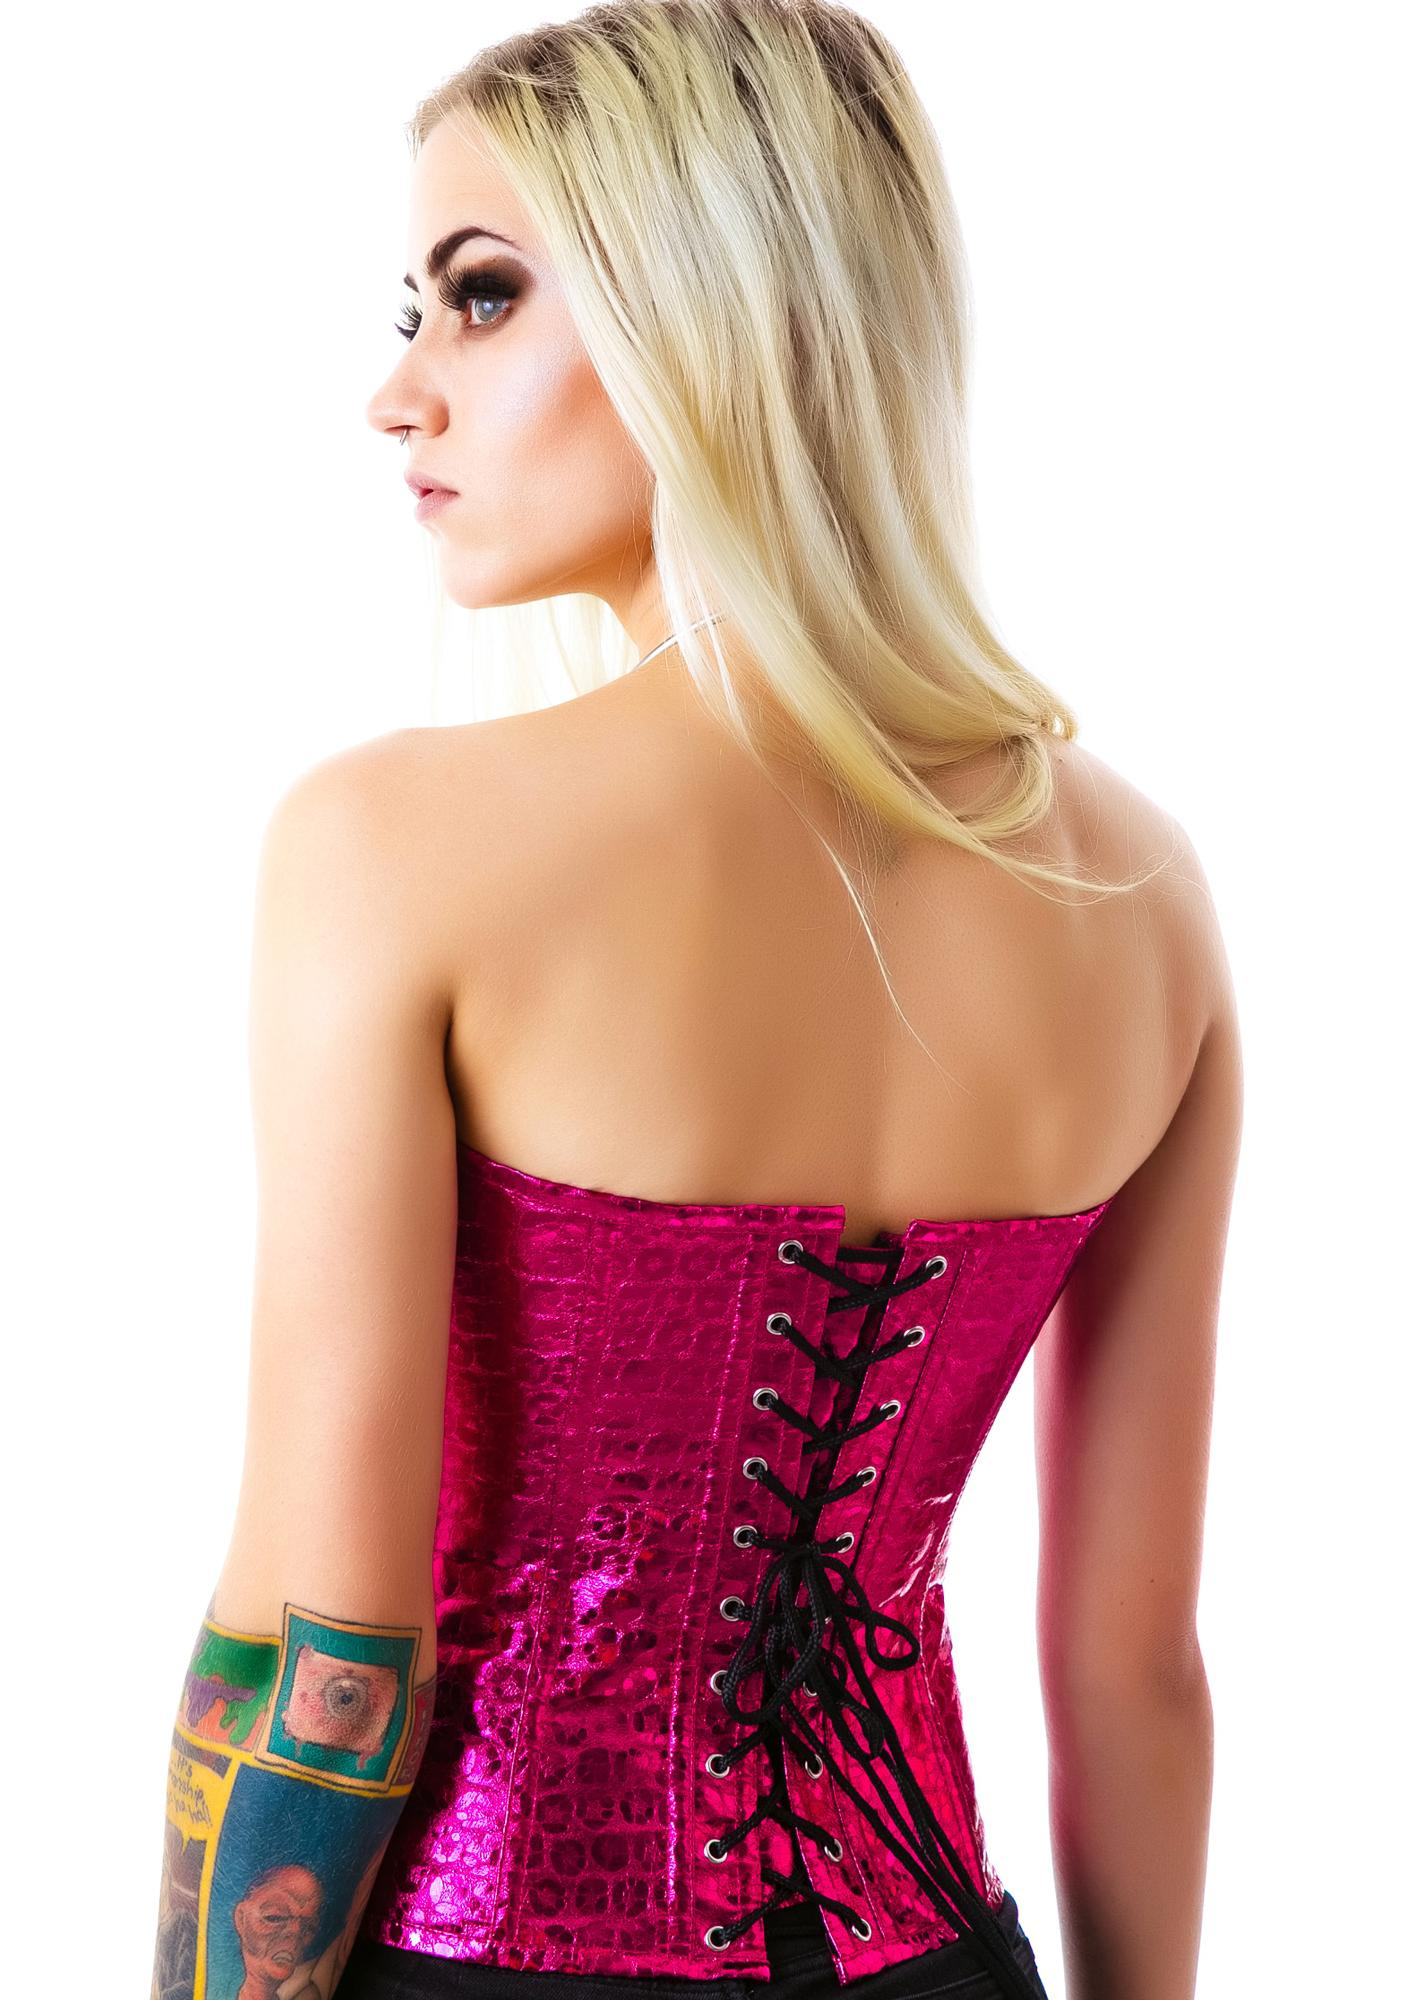 Jewel's Foolish Games Corset